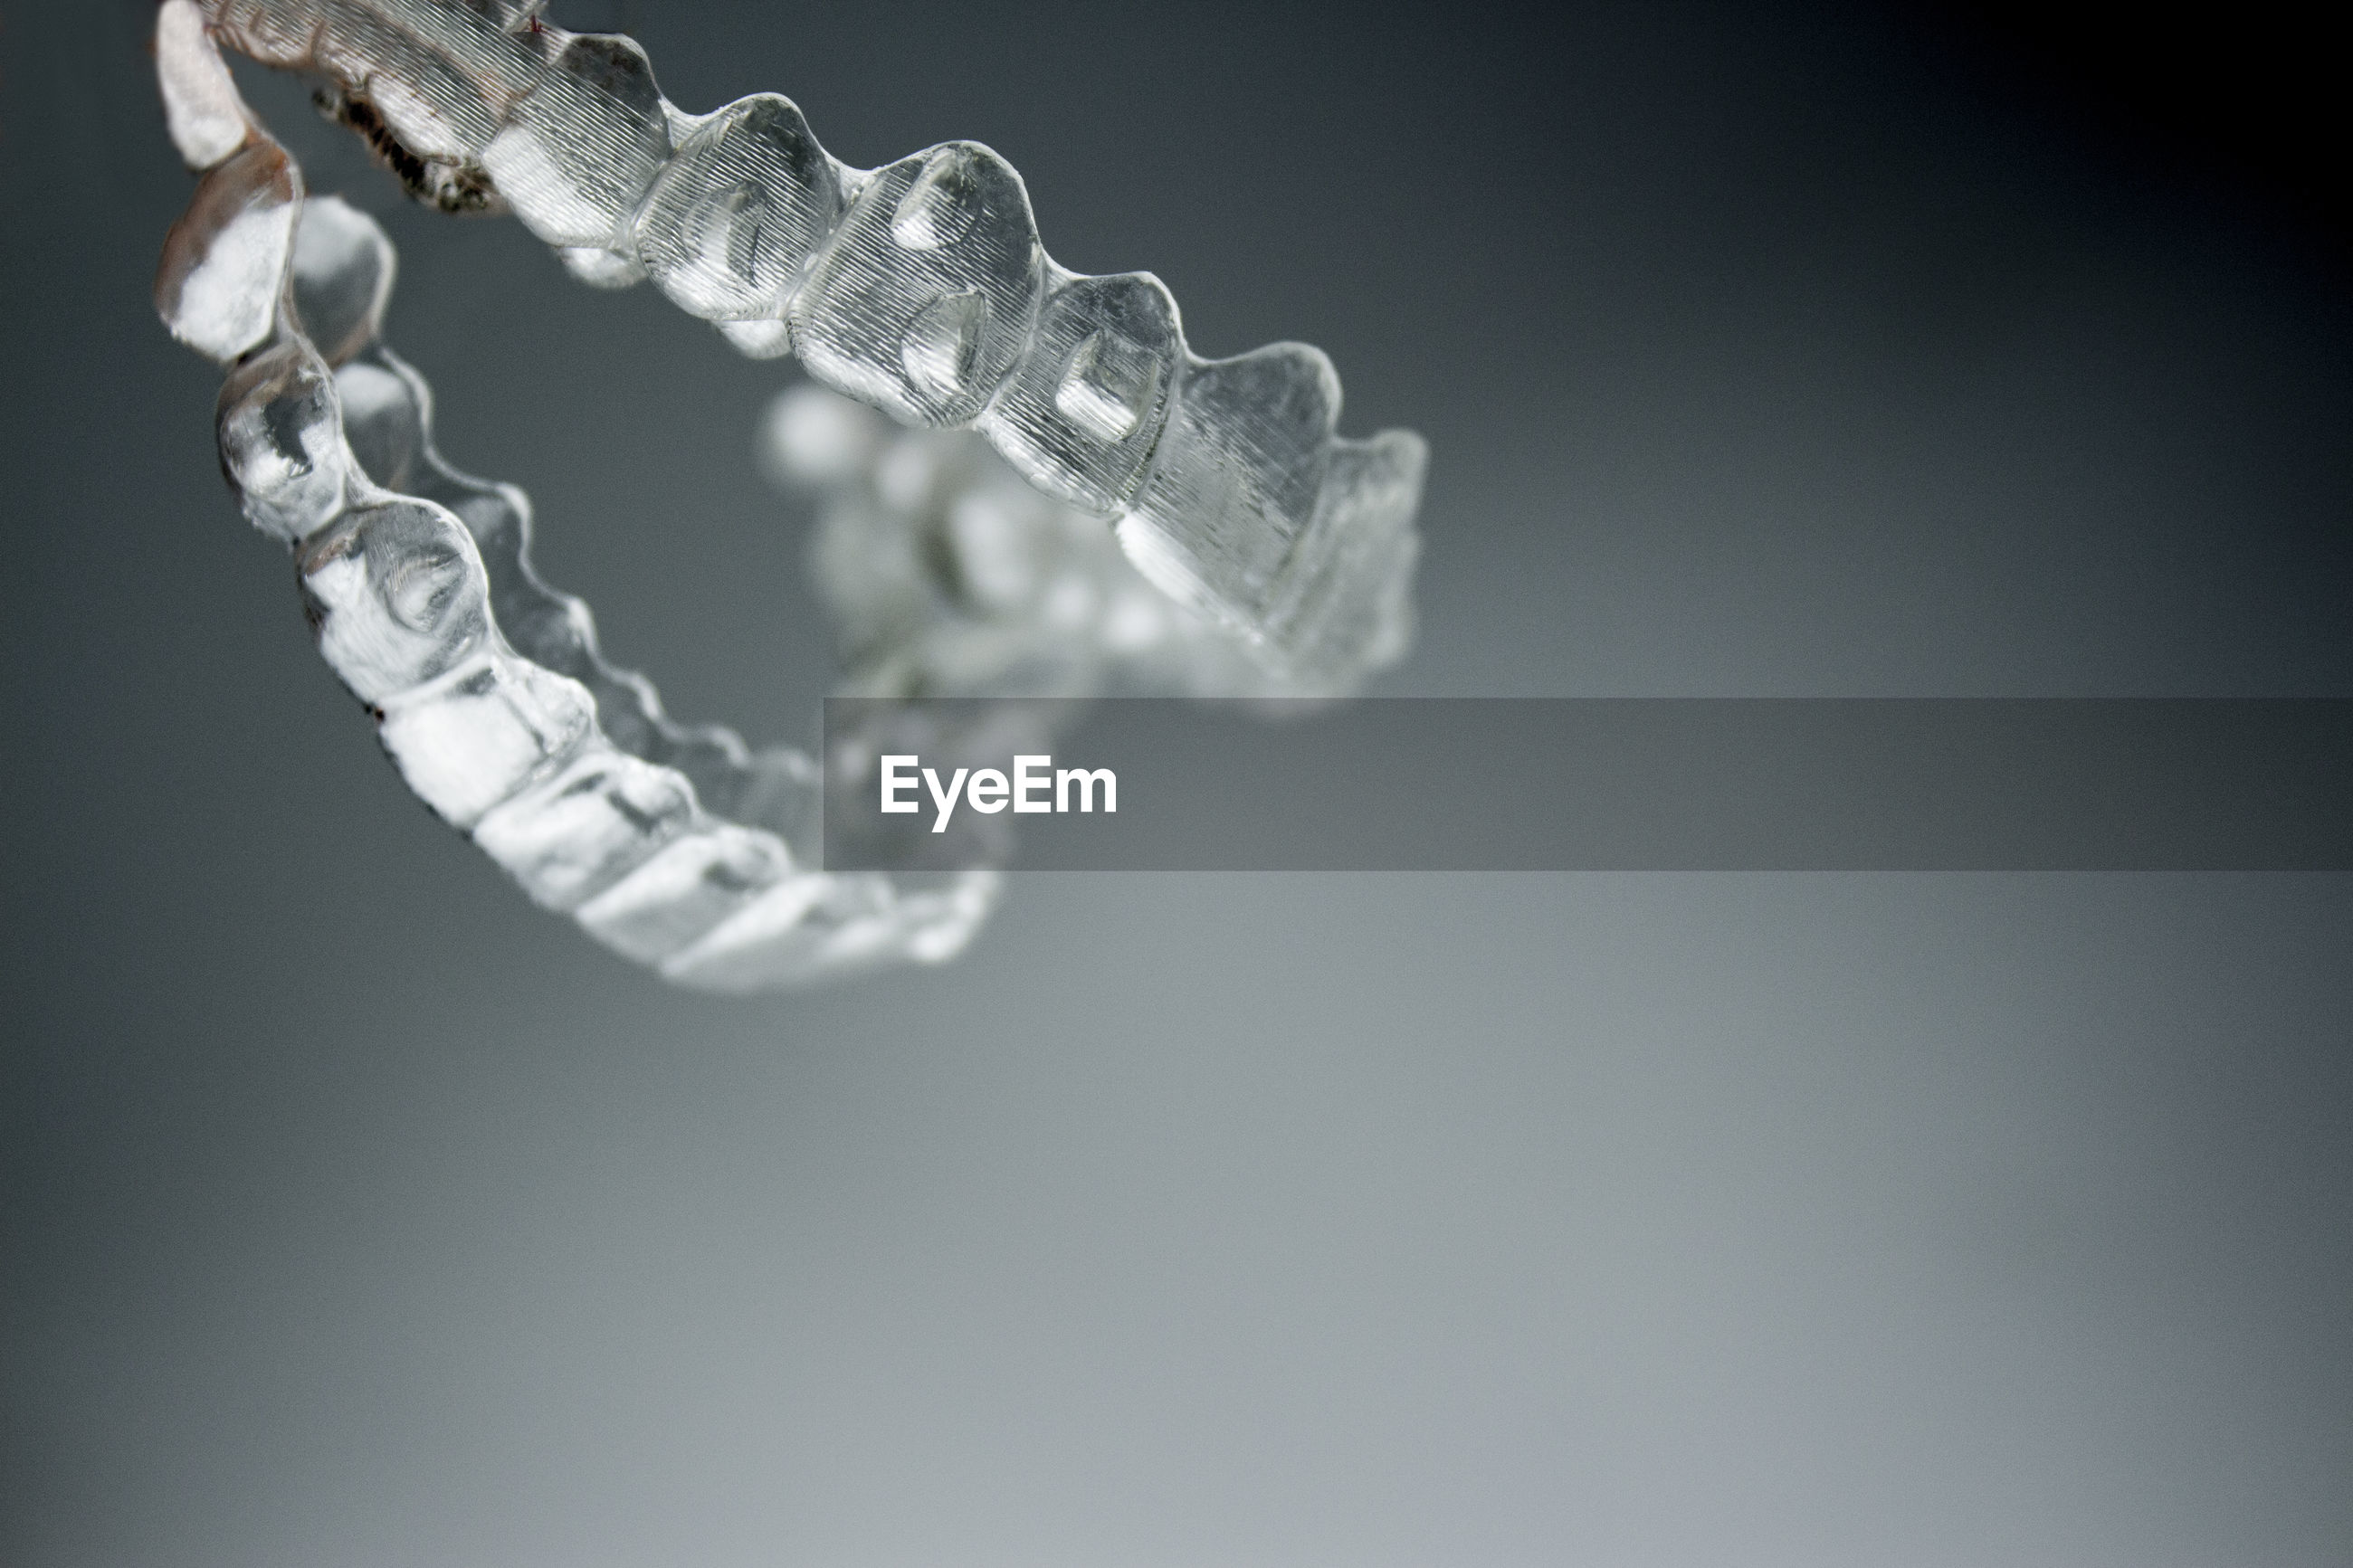 Close-up of plastic dentures over gray background